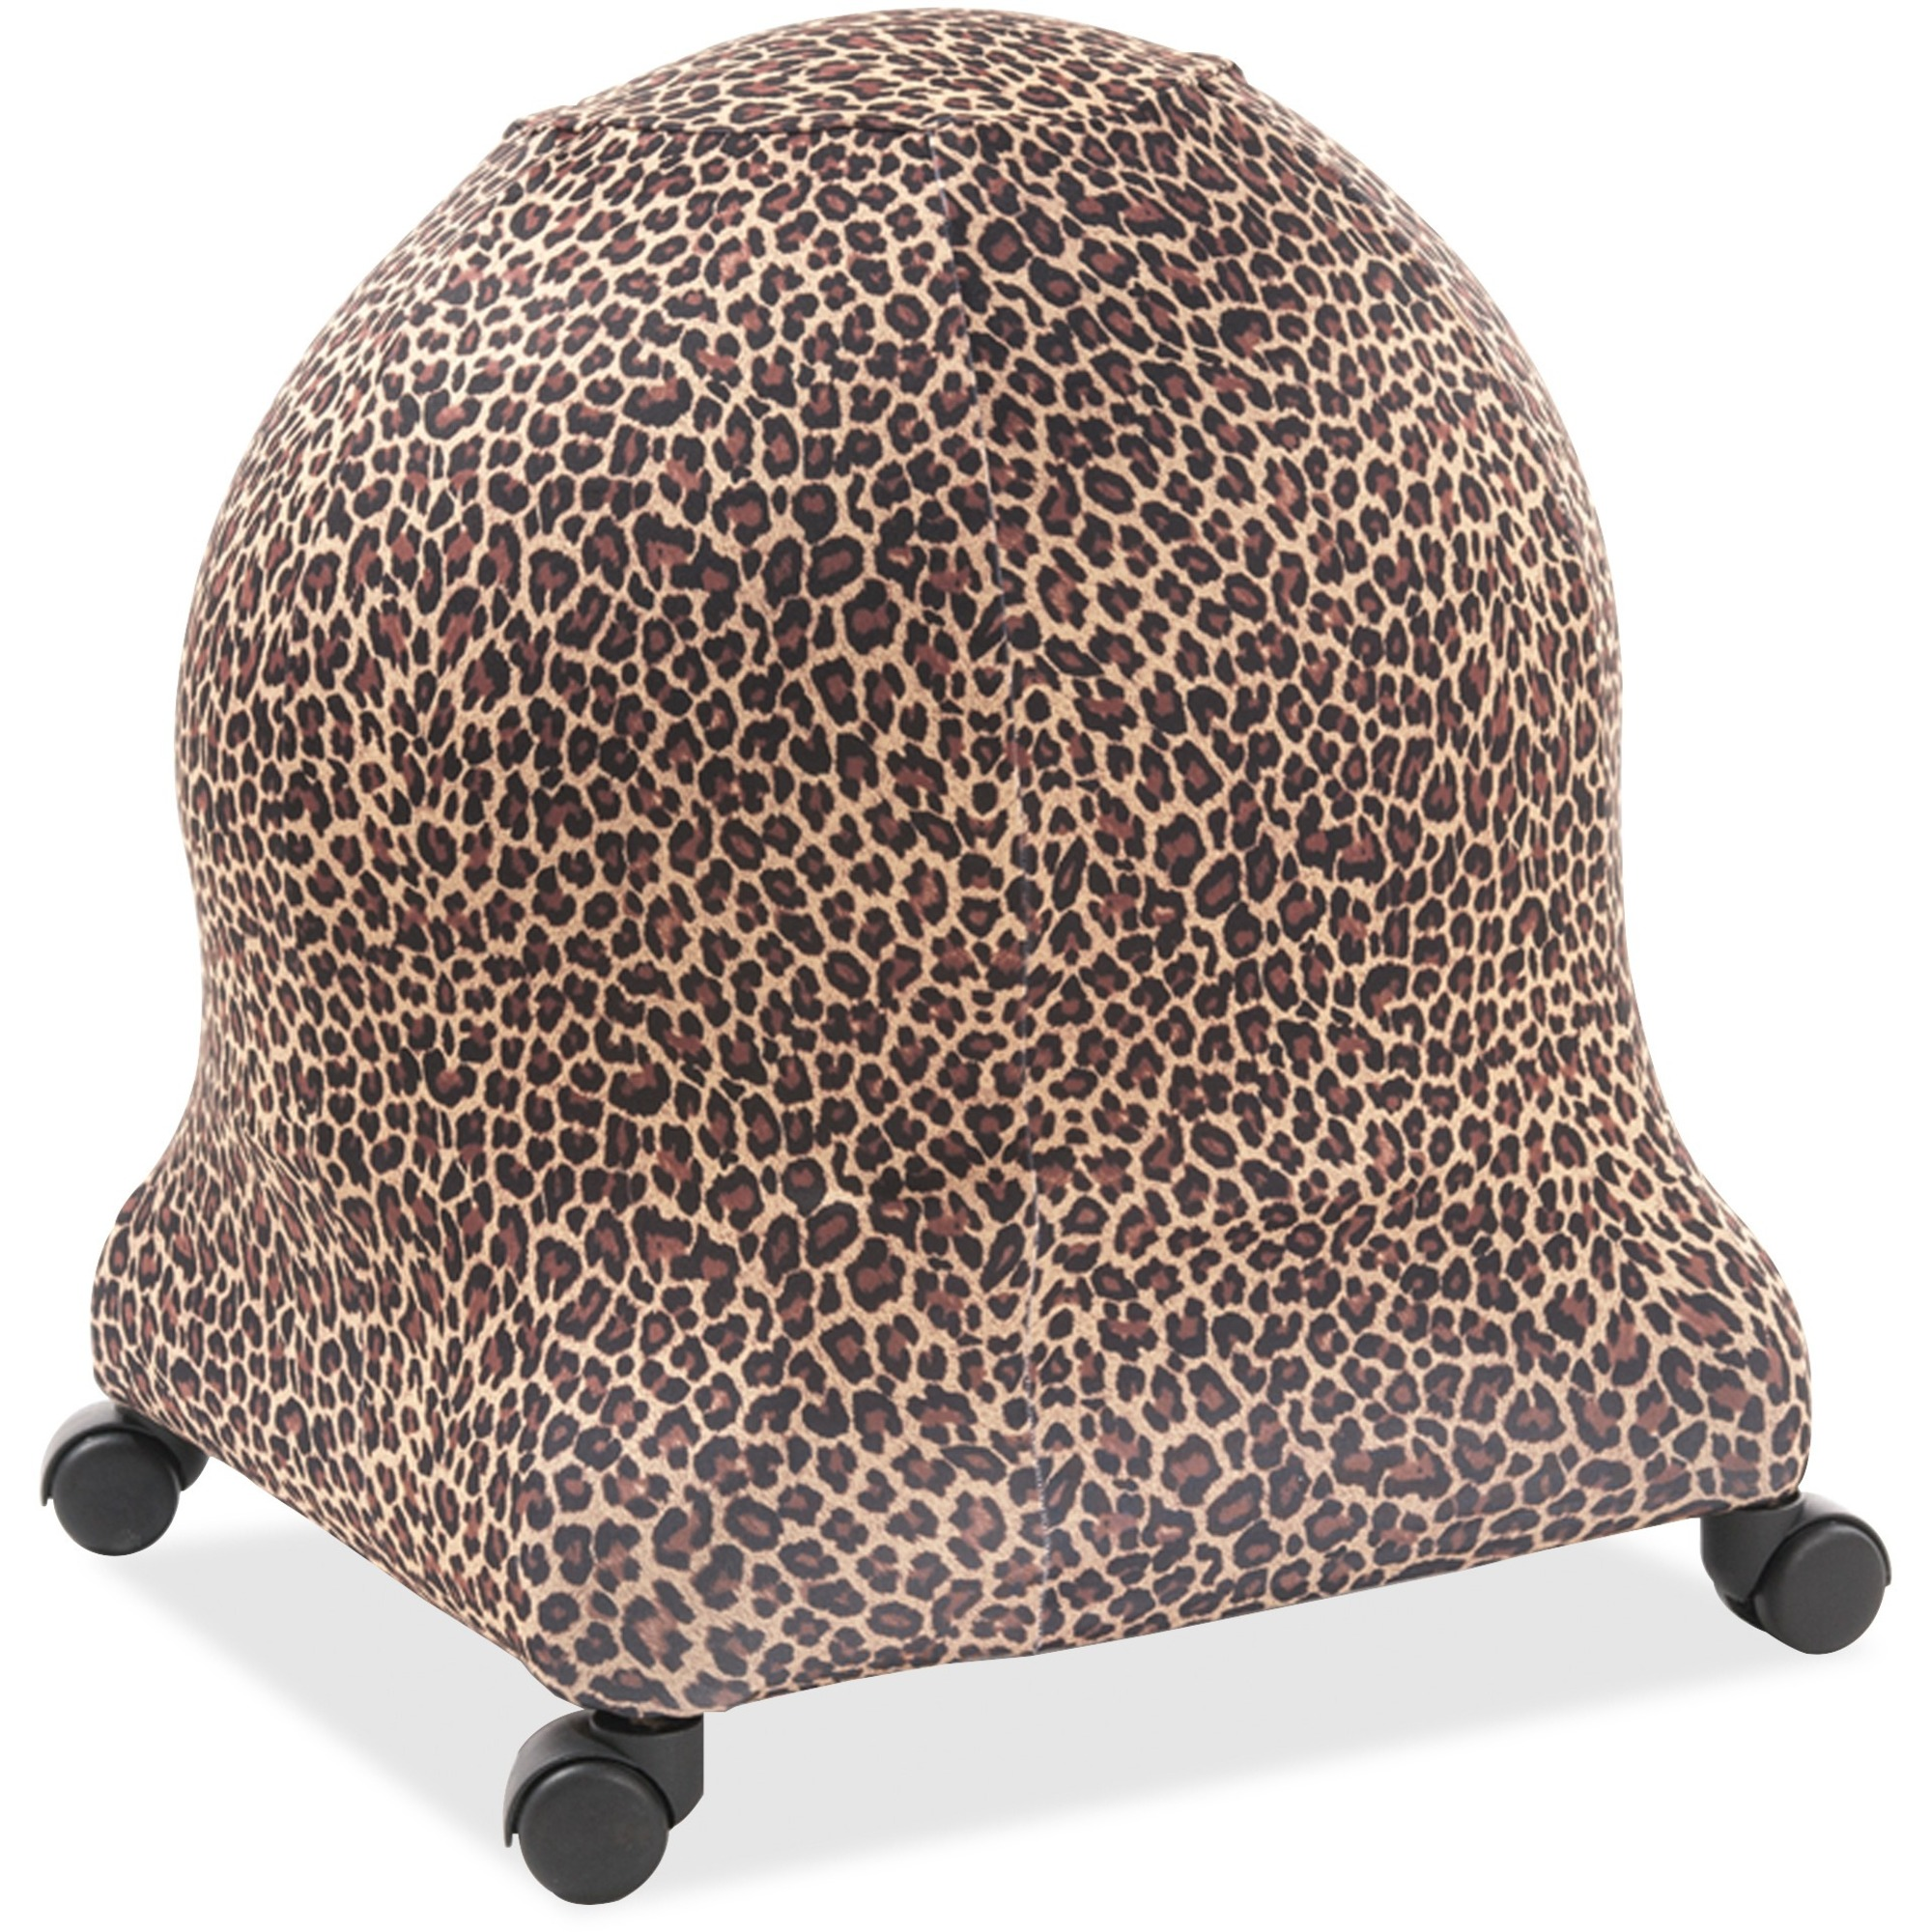 Posture Perfect Solutions Evolution Chair Ball Chair Leopard Cozy Slipcover    Supports Ball Chair   Breathable